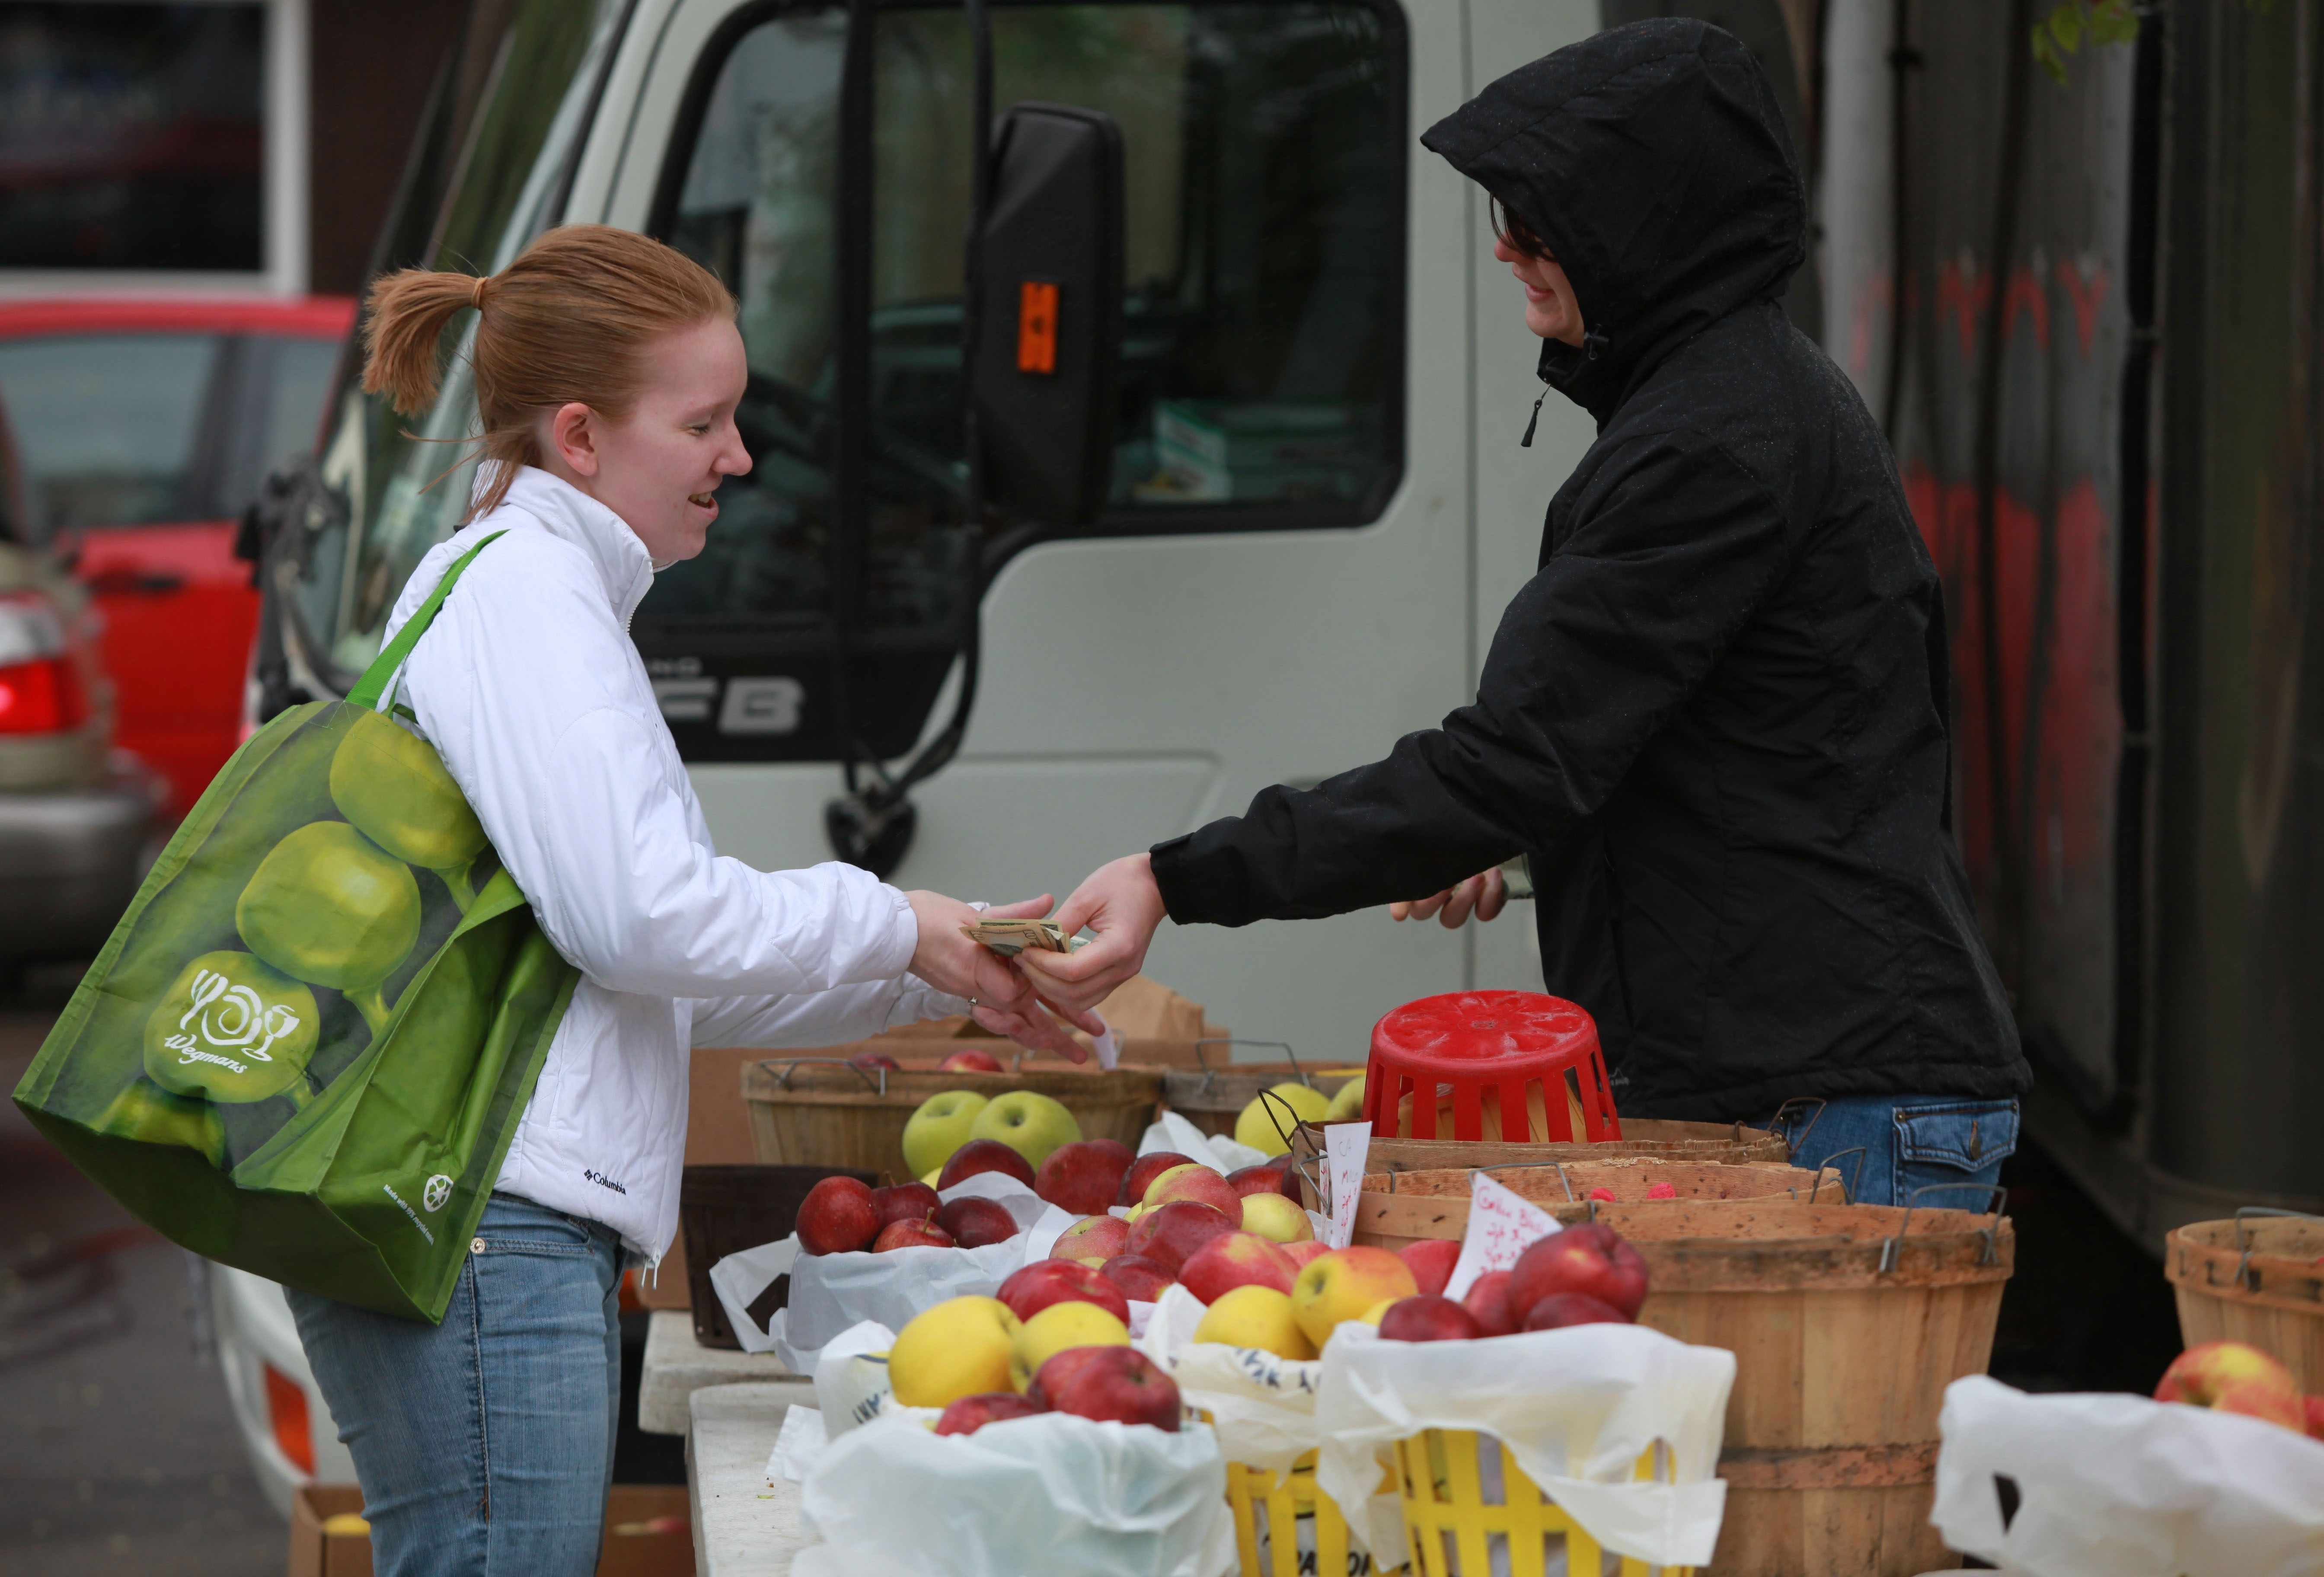 Kristen Muth, left, of Buffalo, buys apples at Dan Tower Farm's stand at the Elmwood-Bidwell Farmers Market, which will close out its season after today and next Saturday. The market is open from 8 a.m. to 1 p.m. on the Elmwood Avenue strip.